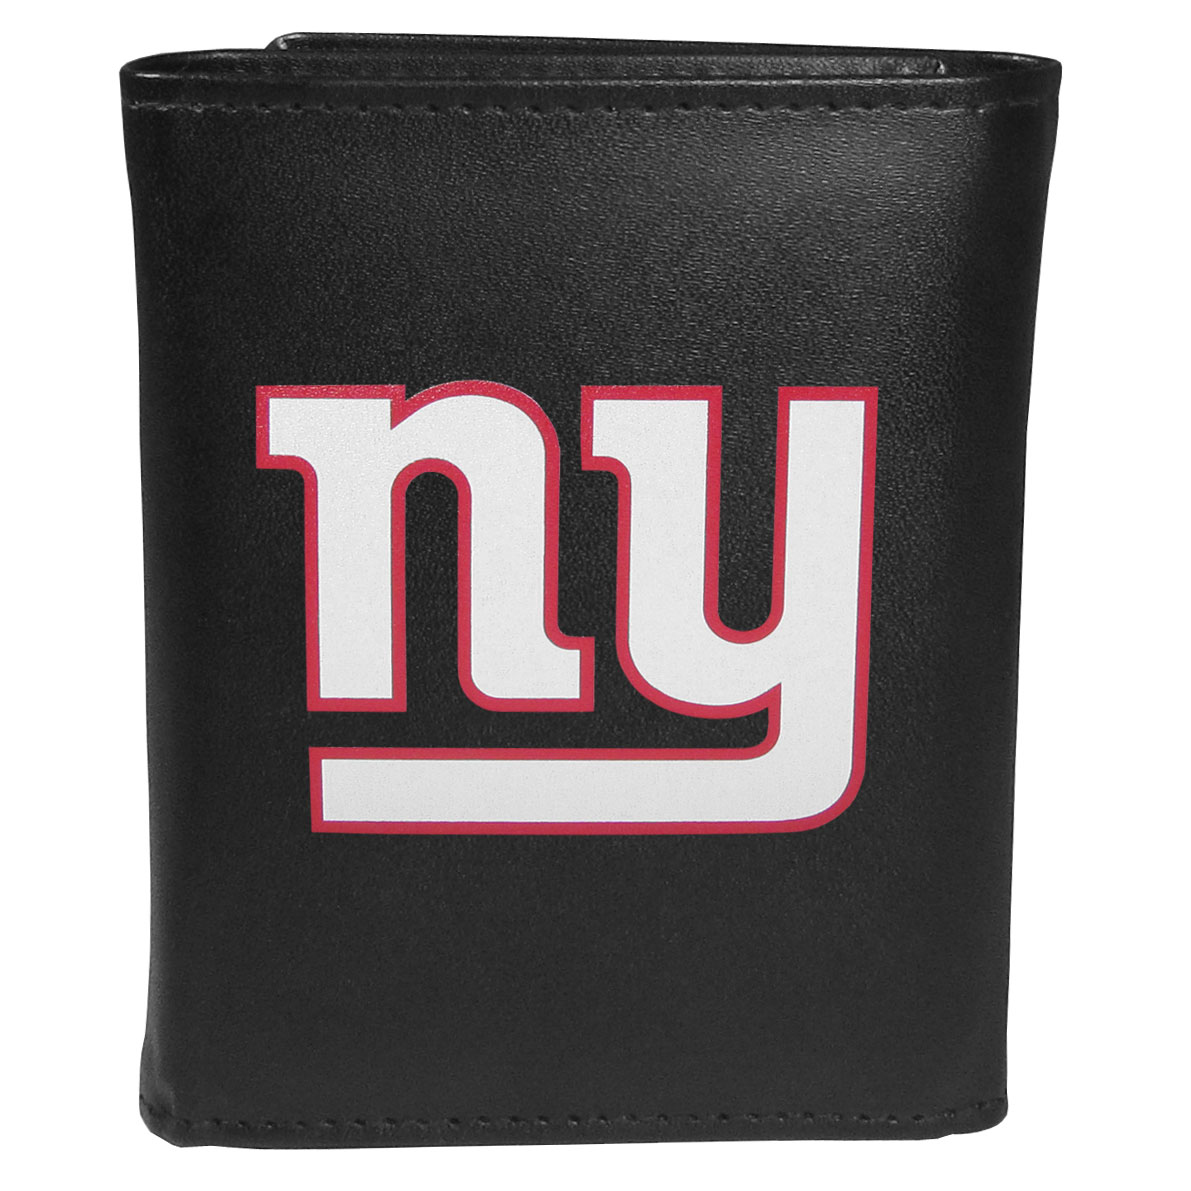 New York Giants Leather Tri-fold Wallet, Large Logo - Our classic fine leather tri-fold wallet is meticulously crafted with genuine leather that will age beautifully so you will have a quality wallet for years to come. This is fan apparel at its finest. The wallet is packed with organizational  features; lots of credit card slots, large billfold pocket, and a window ID slot. The front of the wallet features an extra large New York Giants printed logo.